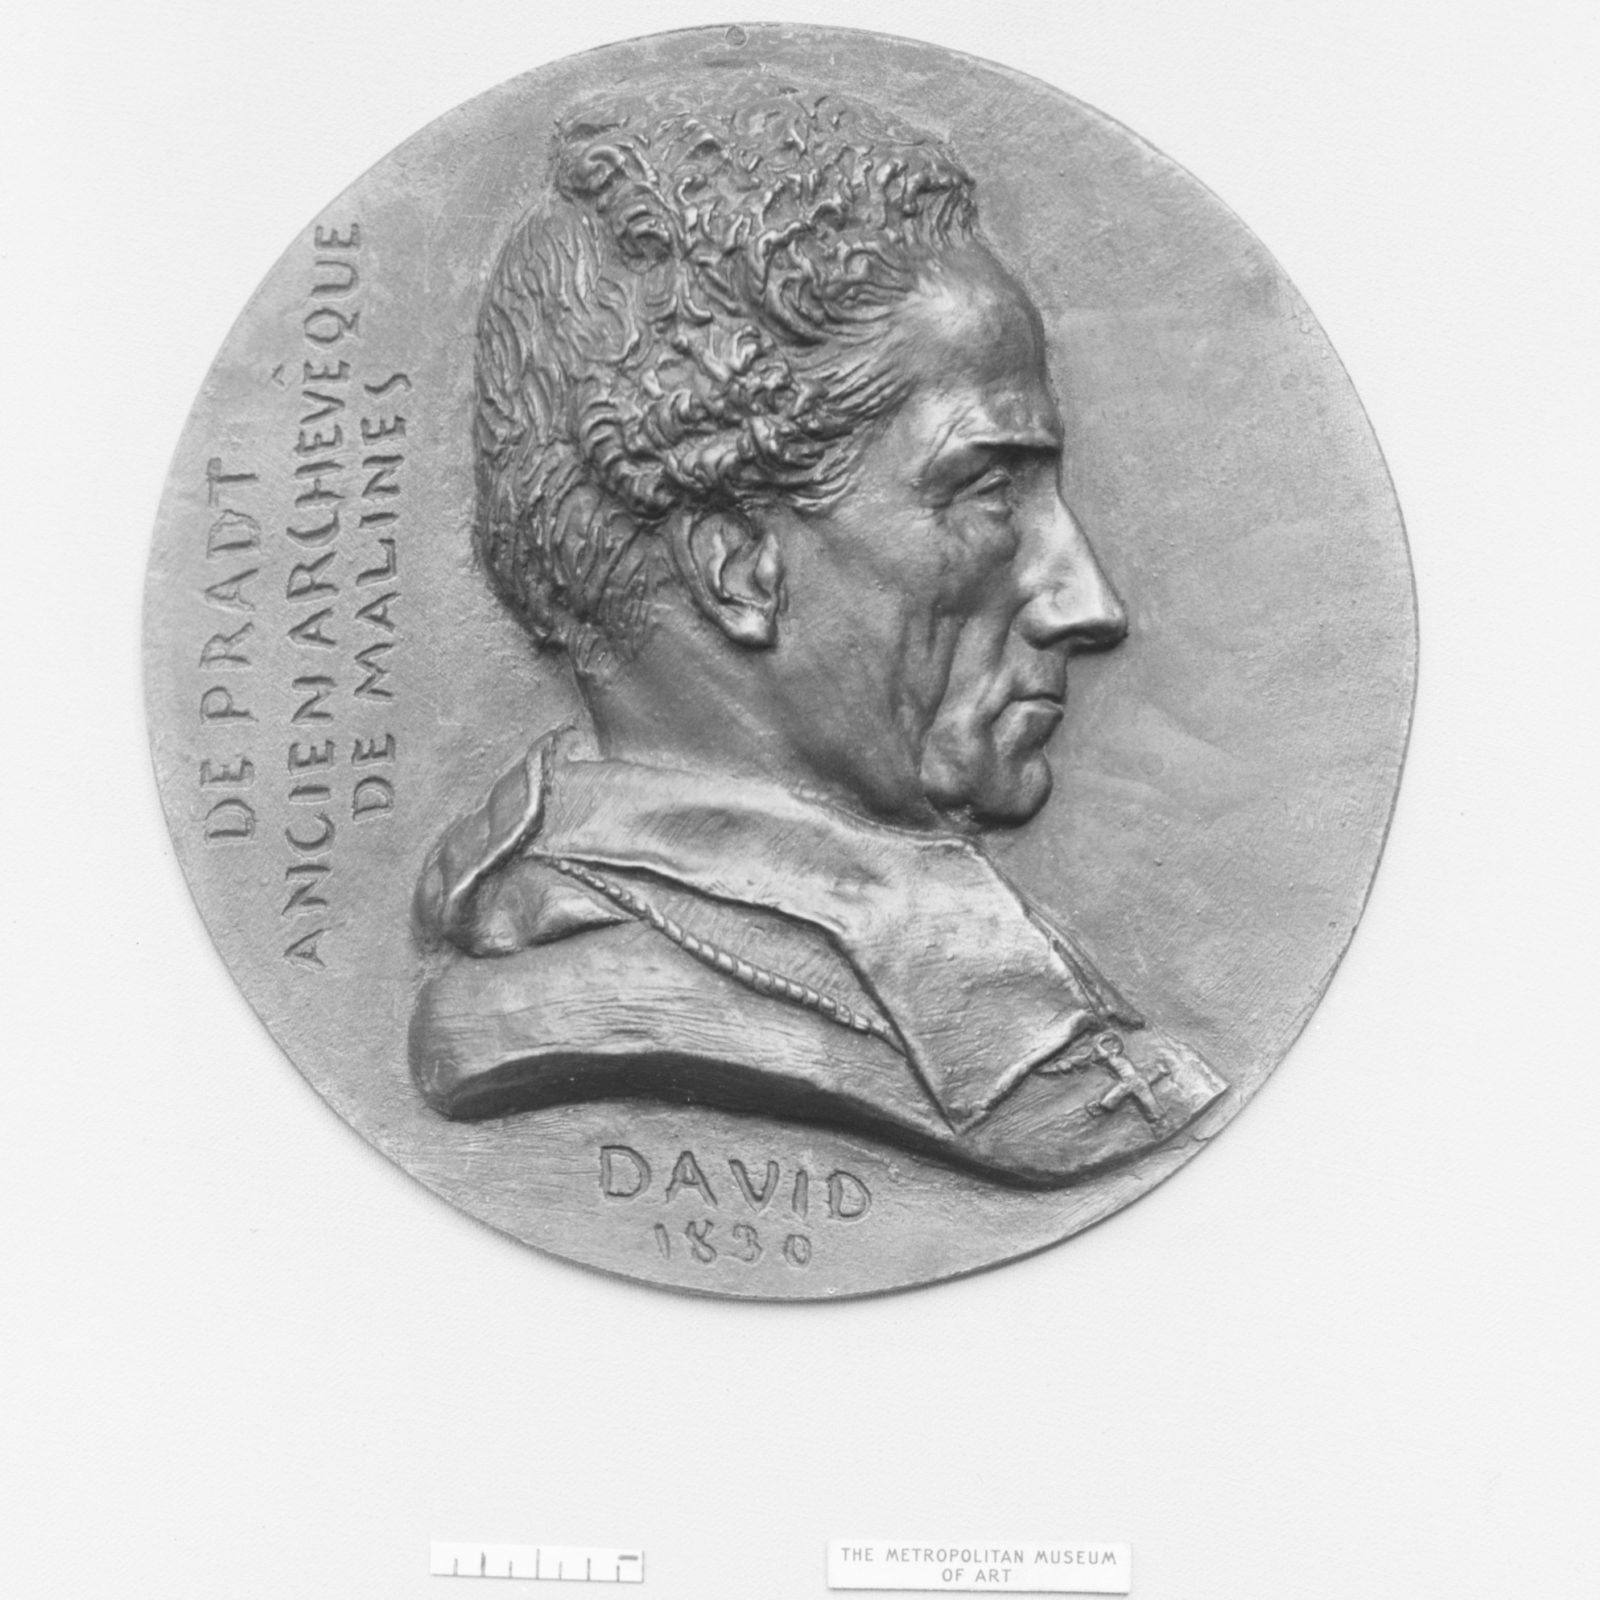 """Dominique Dufour, Baron de Pradt (1759–1837), French ecclesiastic and politician, commonly known as the """"Abbé de Pradt,"""" though at one time nominated by Bonaparte, for political services, Archbishop of Malines"""